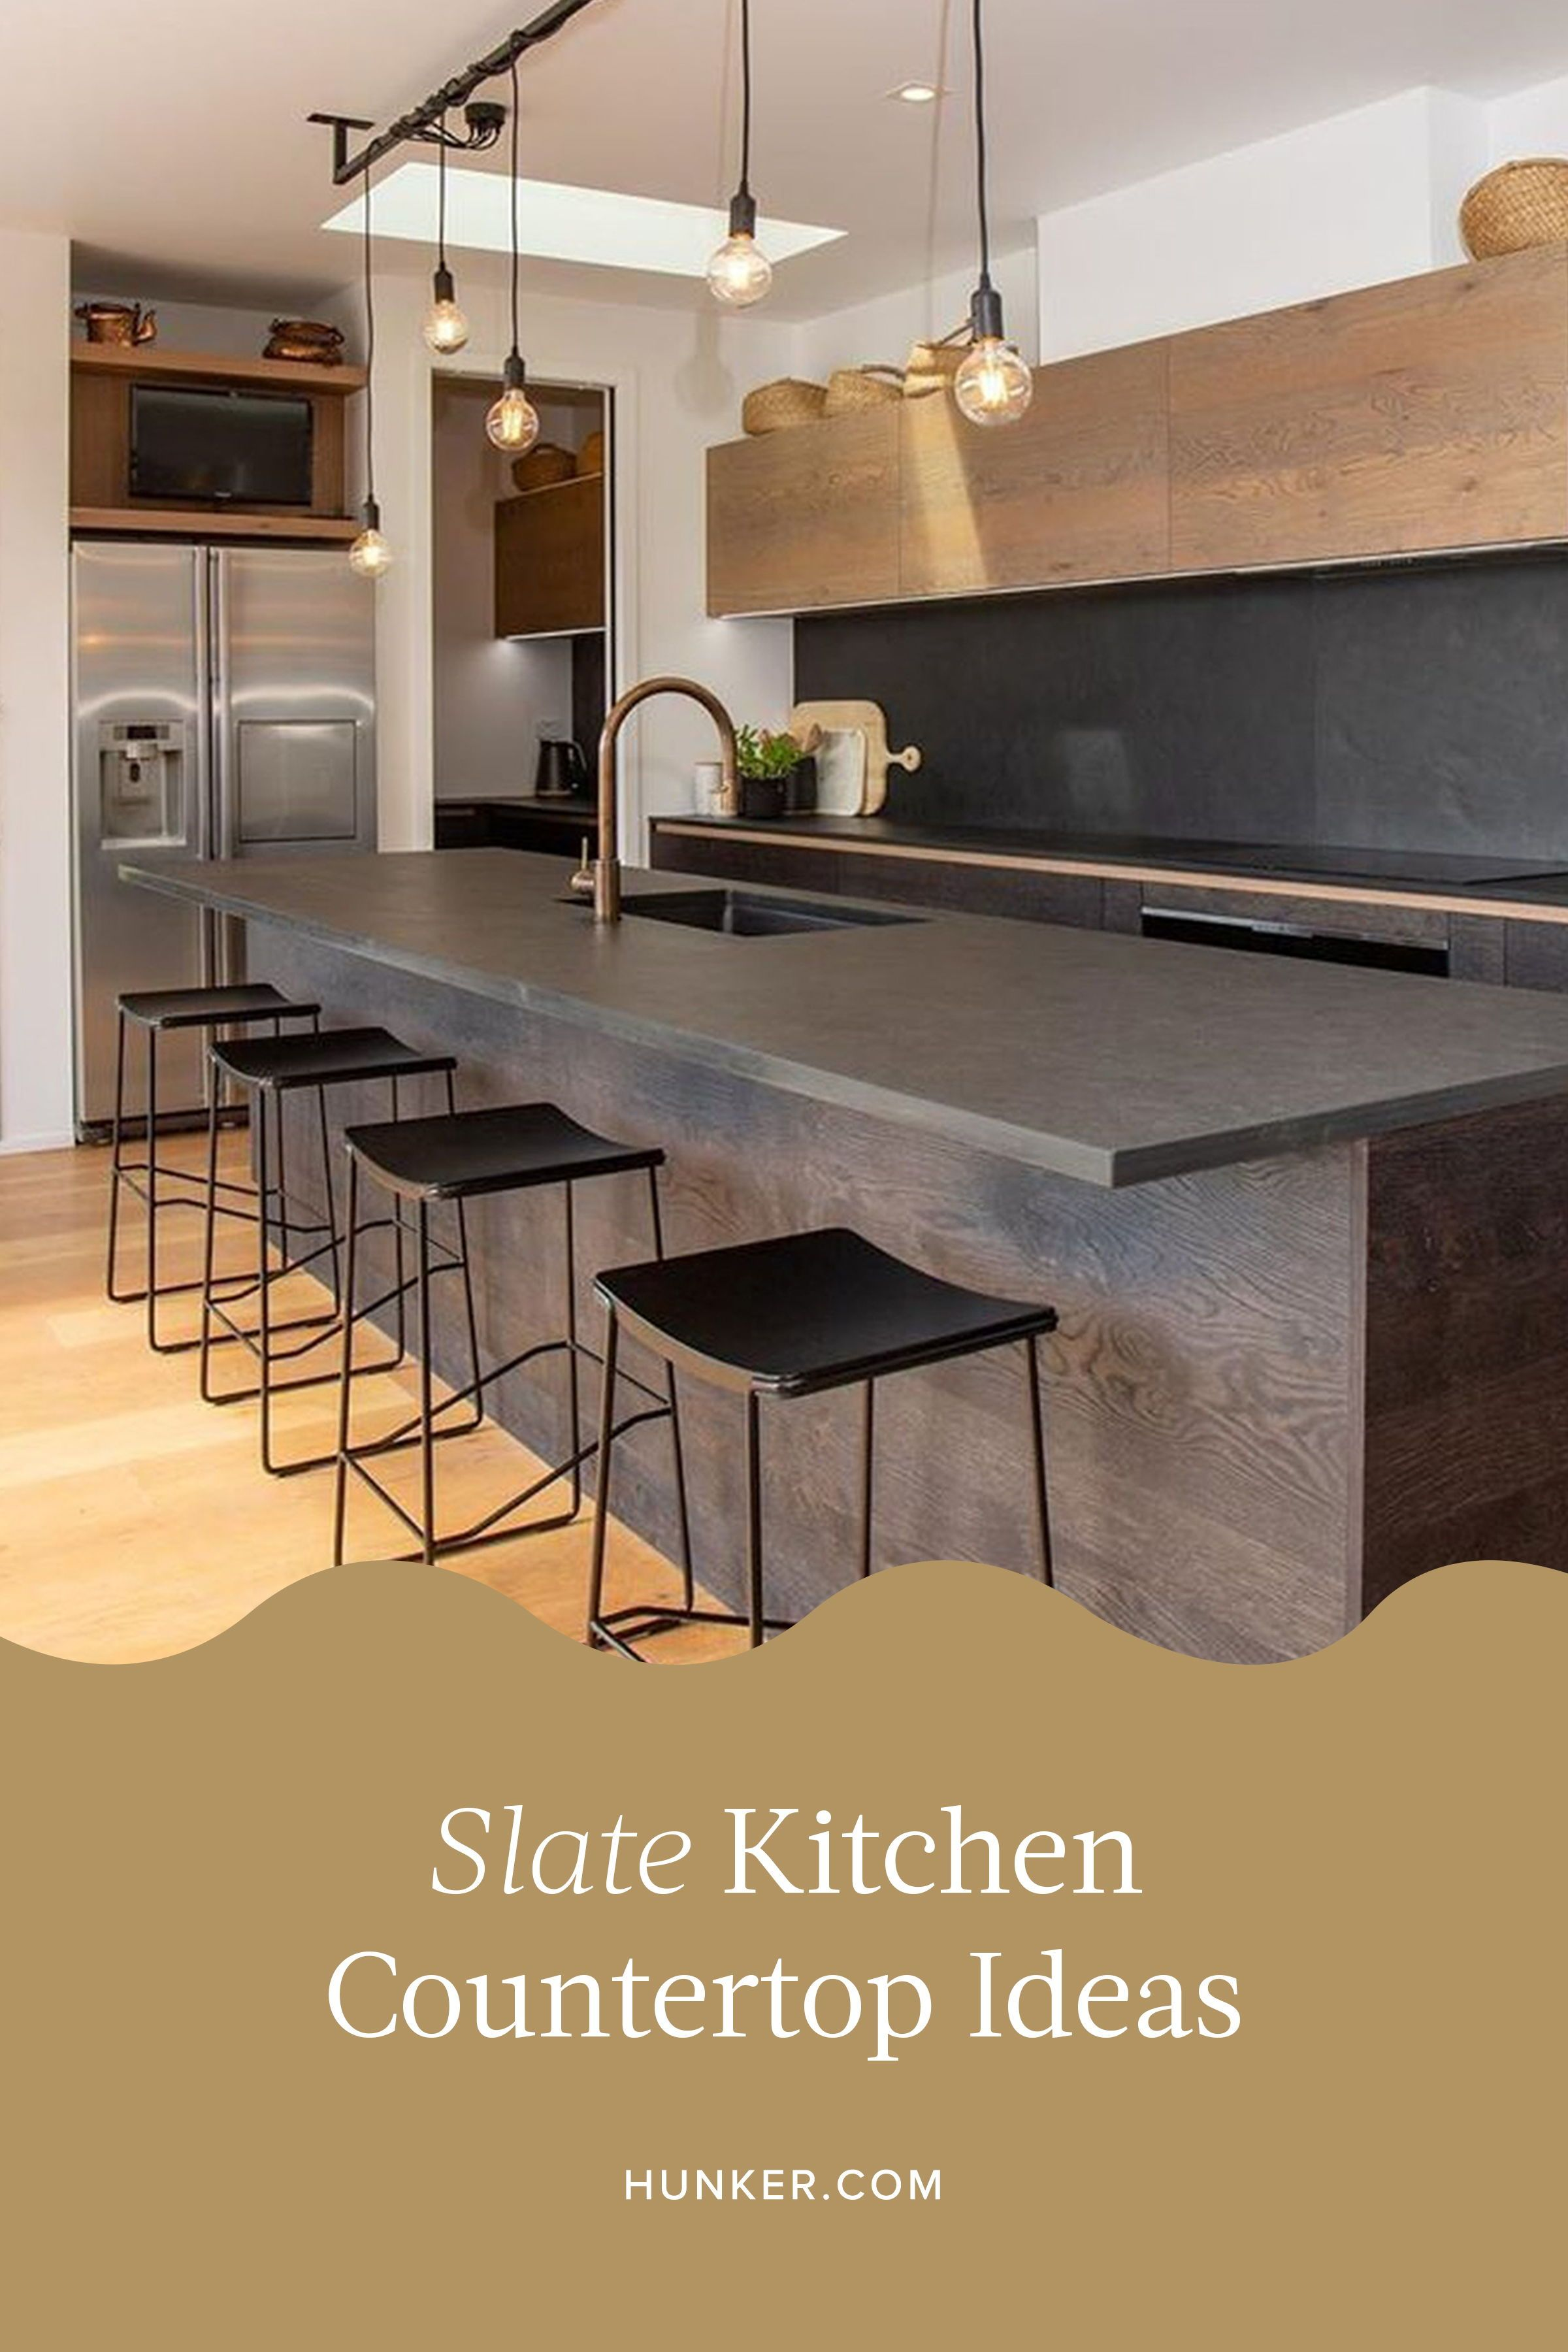 Slate Countertops Are Guaranteed To Bring Dramatic Edge To Your Kitchen In 2020 Slate Kitchen Slate Countertop Countertops